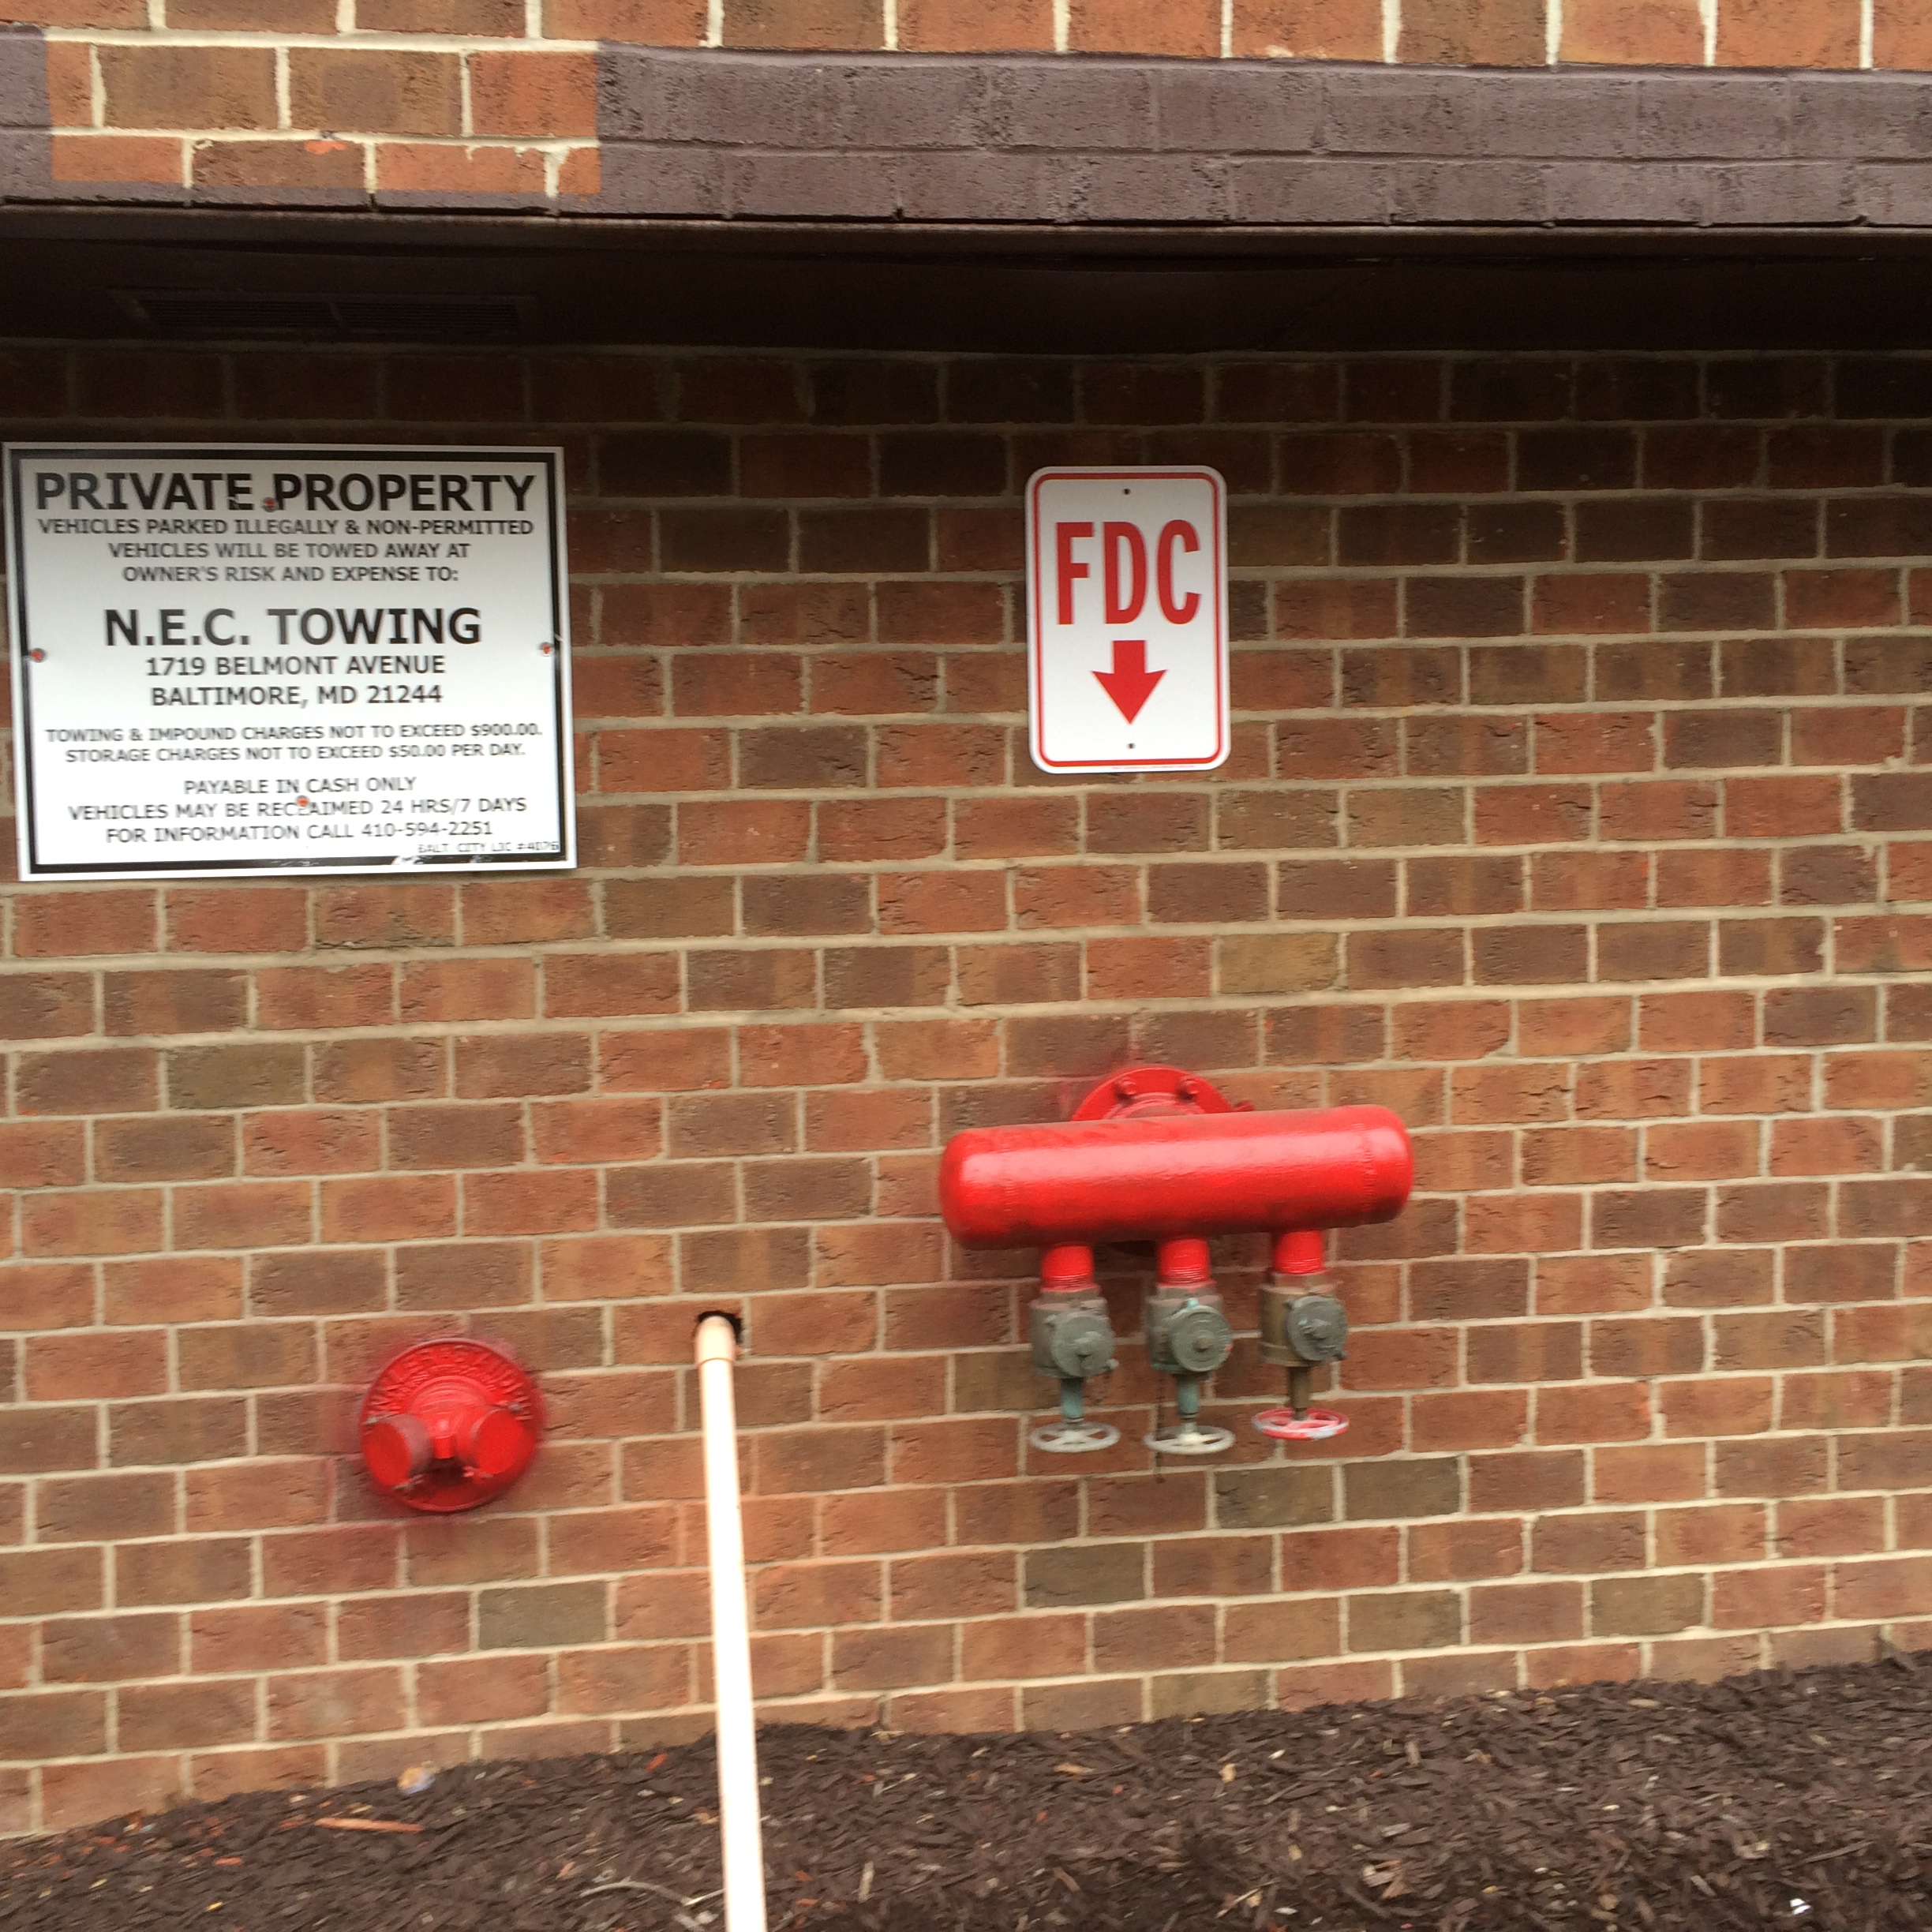 Home Fire Sprinkler System Design: Inspection, Testing, And Maintenance Of Fire Protection